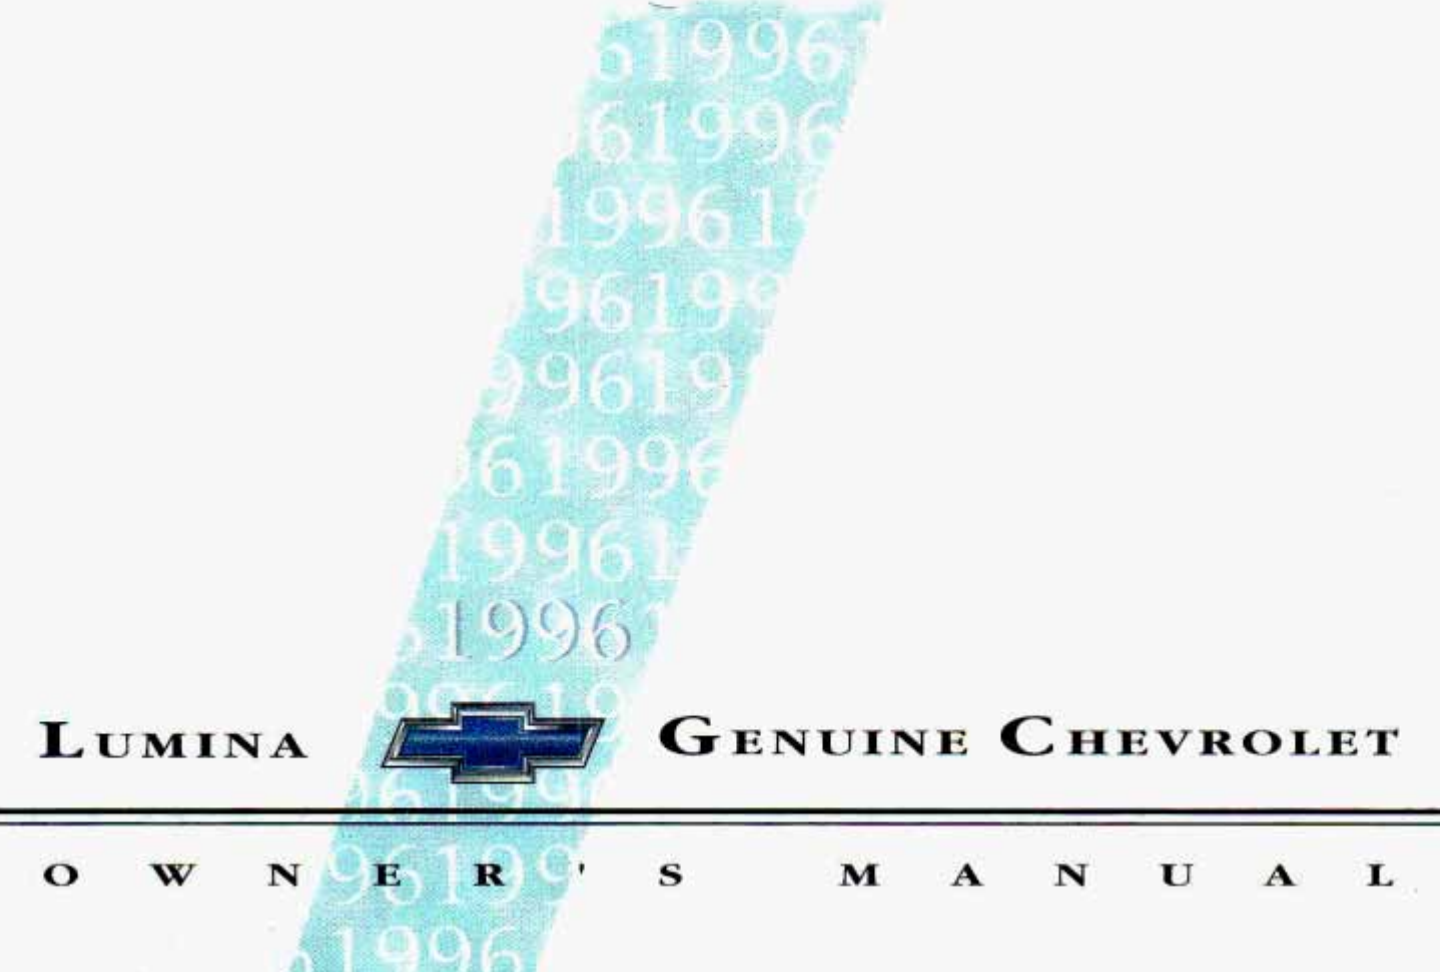 1996 chevrolet lumina owners manual pdf rh manuals co 1997 Chevy Lumina 1997 Chevy Lumina